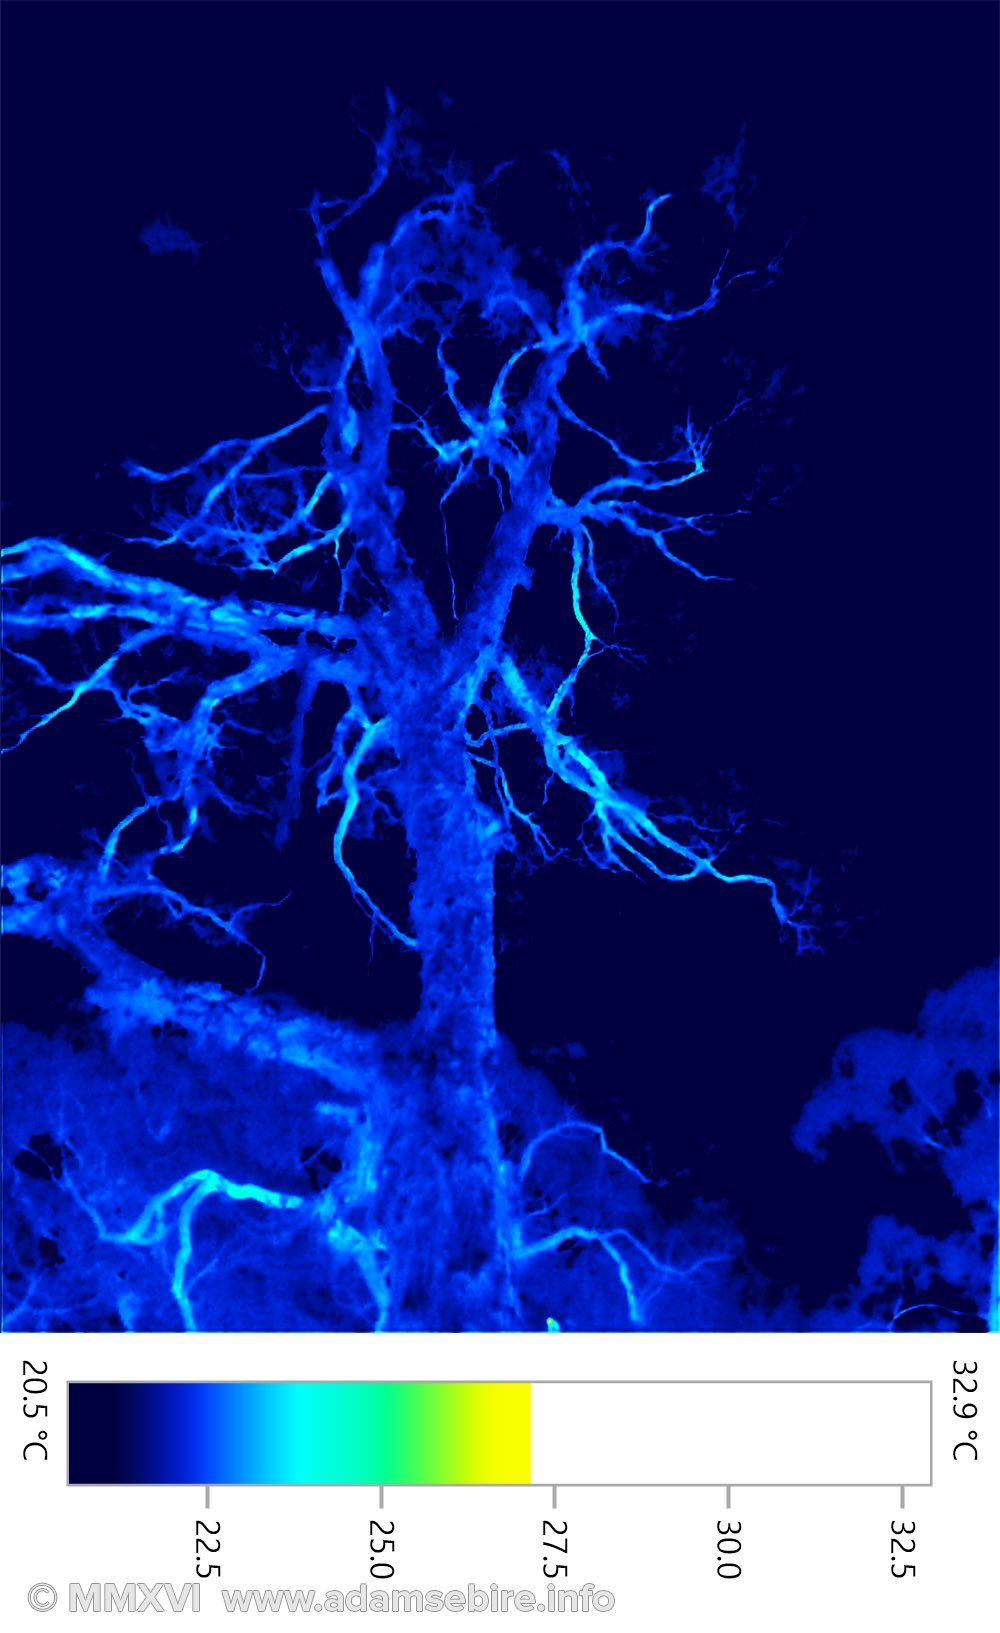 Tree by night (thermographic image 001438)